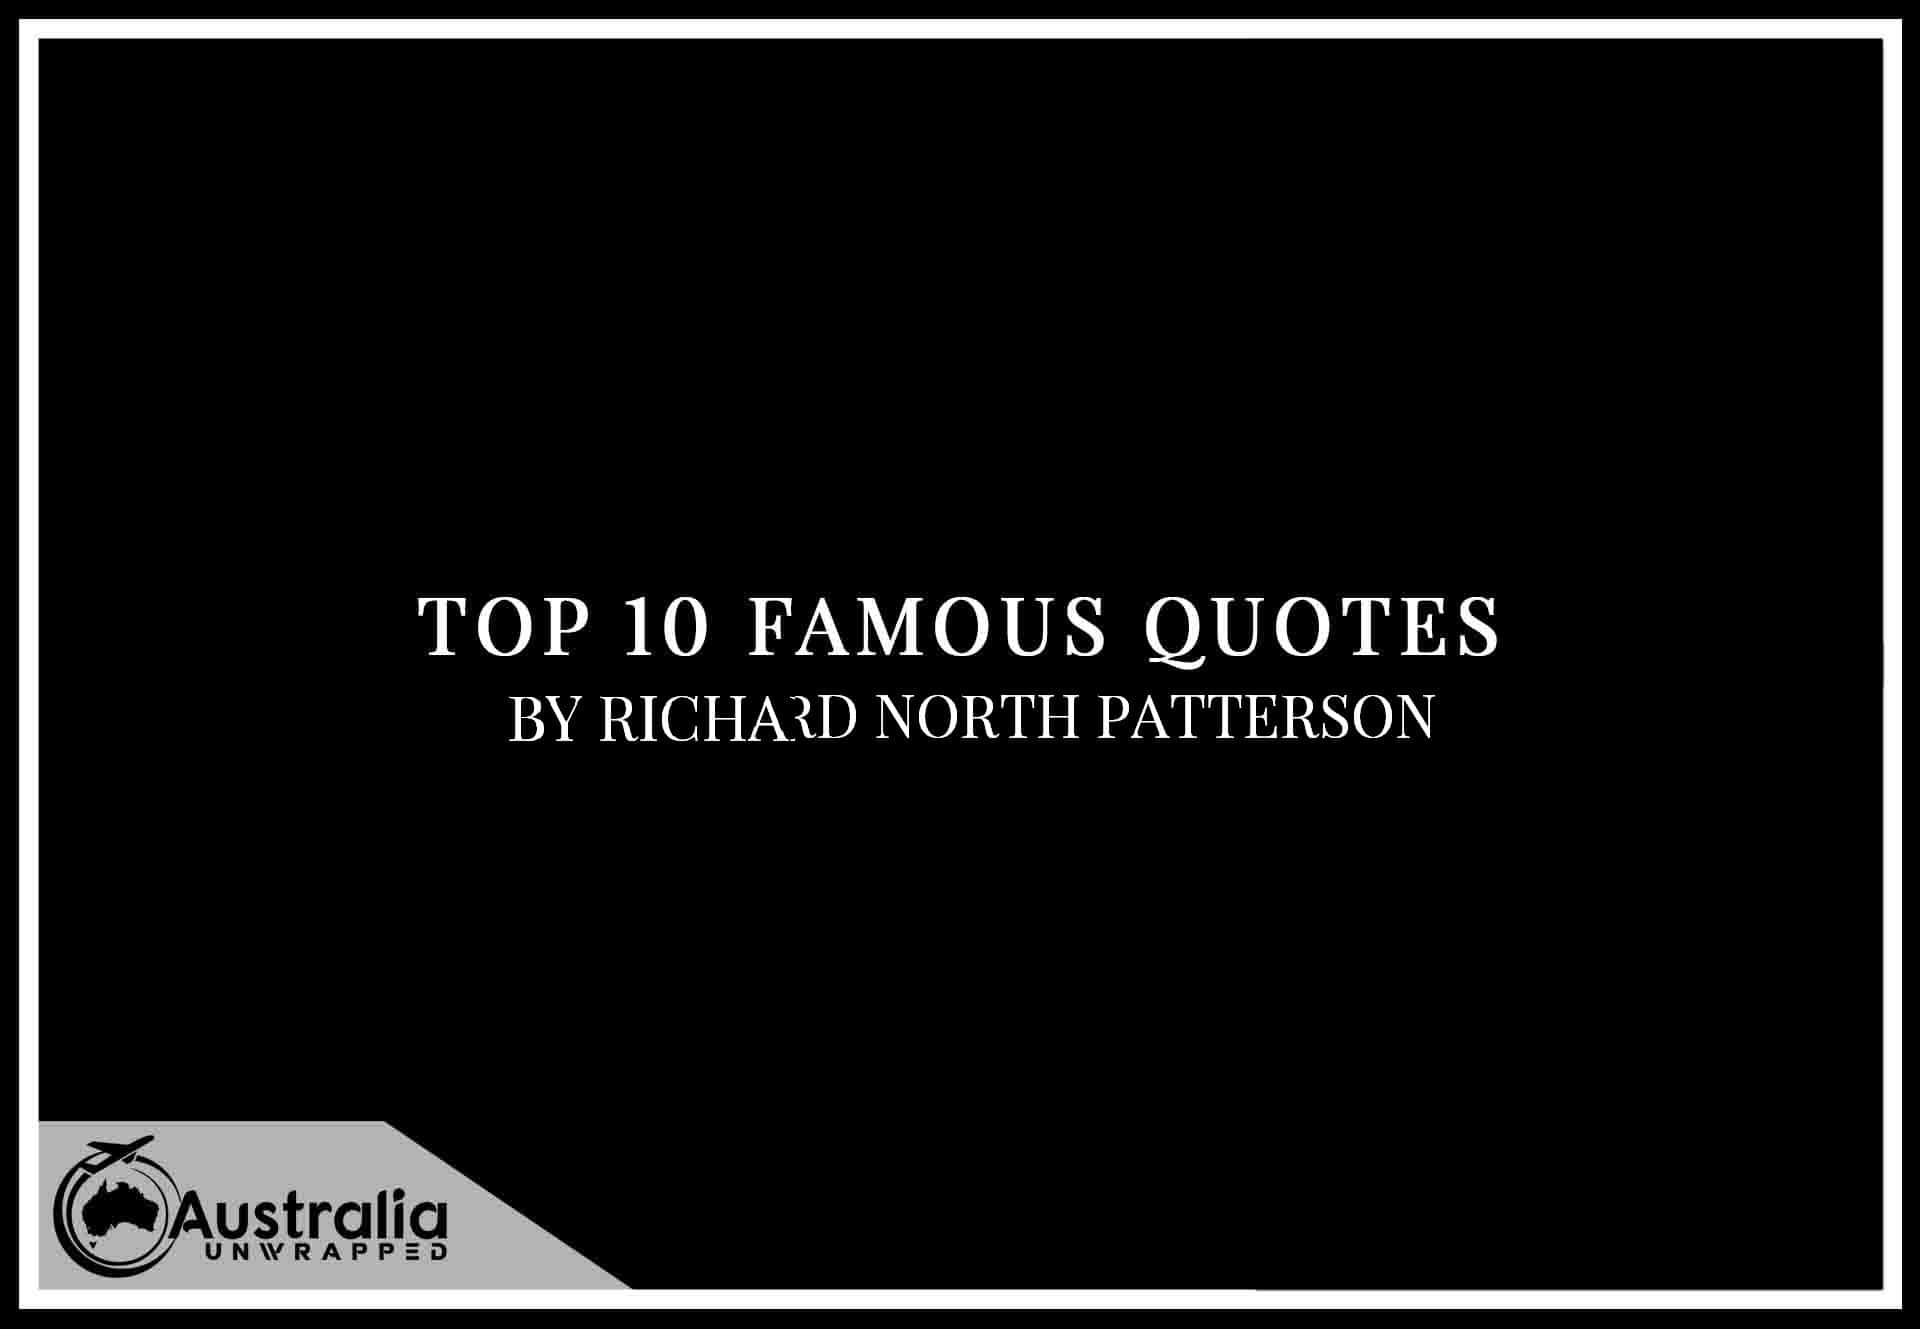 Richard North Patterson's Top 10 Popular and Famous Quotes